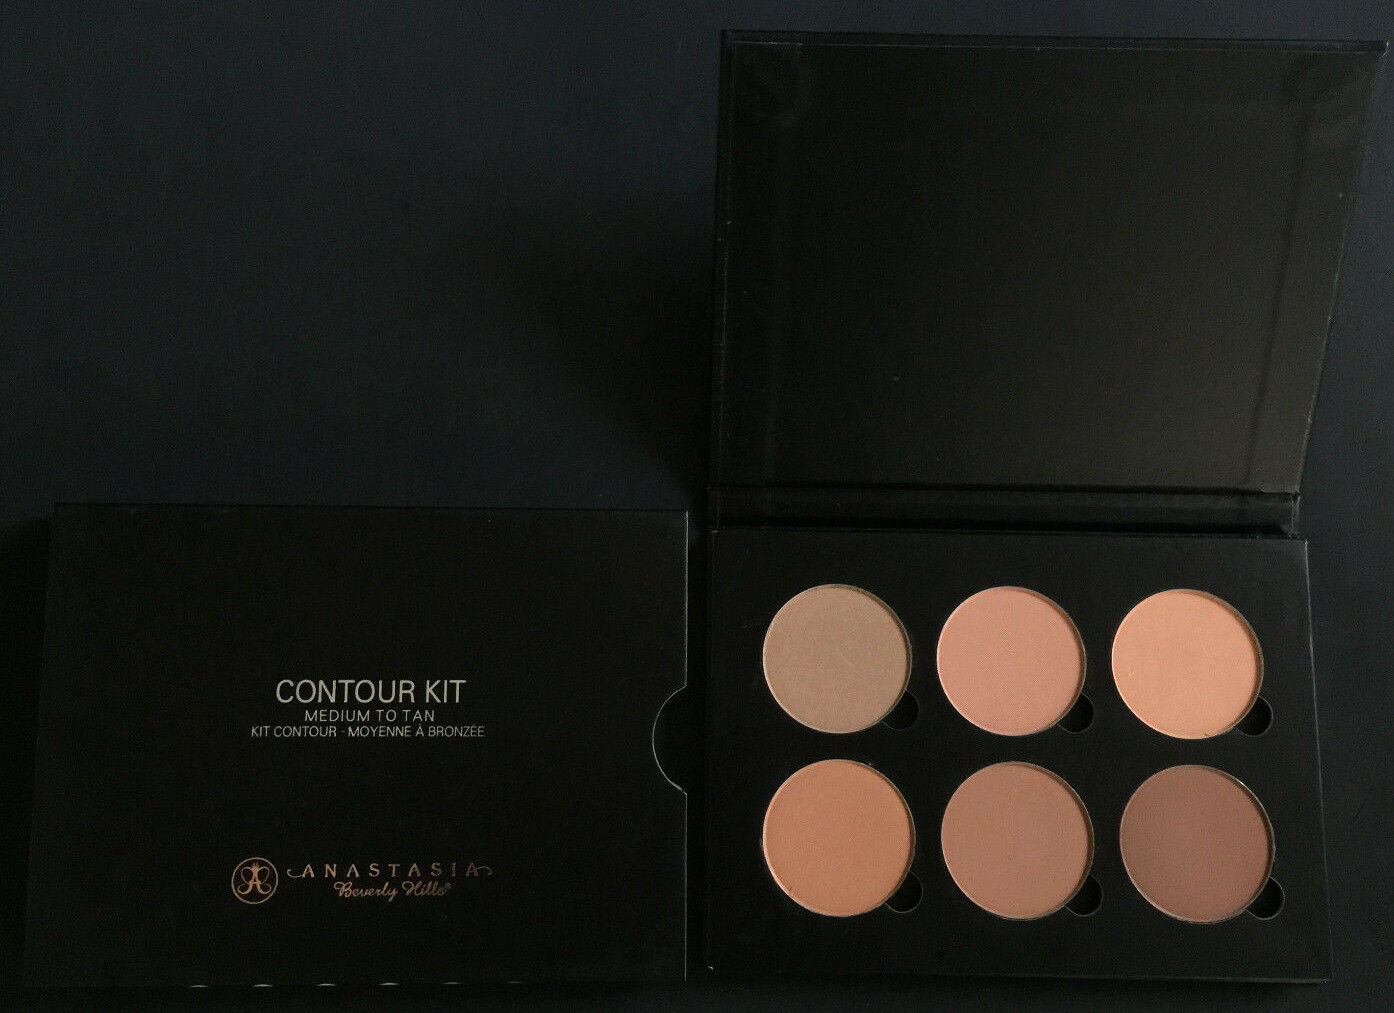 anastasia beverly hills contour book for sale. picture 1 of 5 anastasia beverly hills contour book for sale